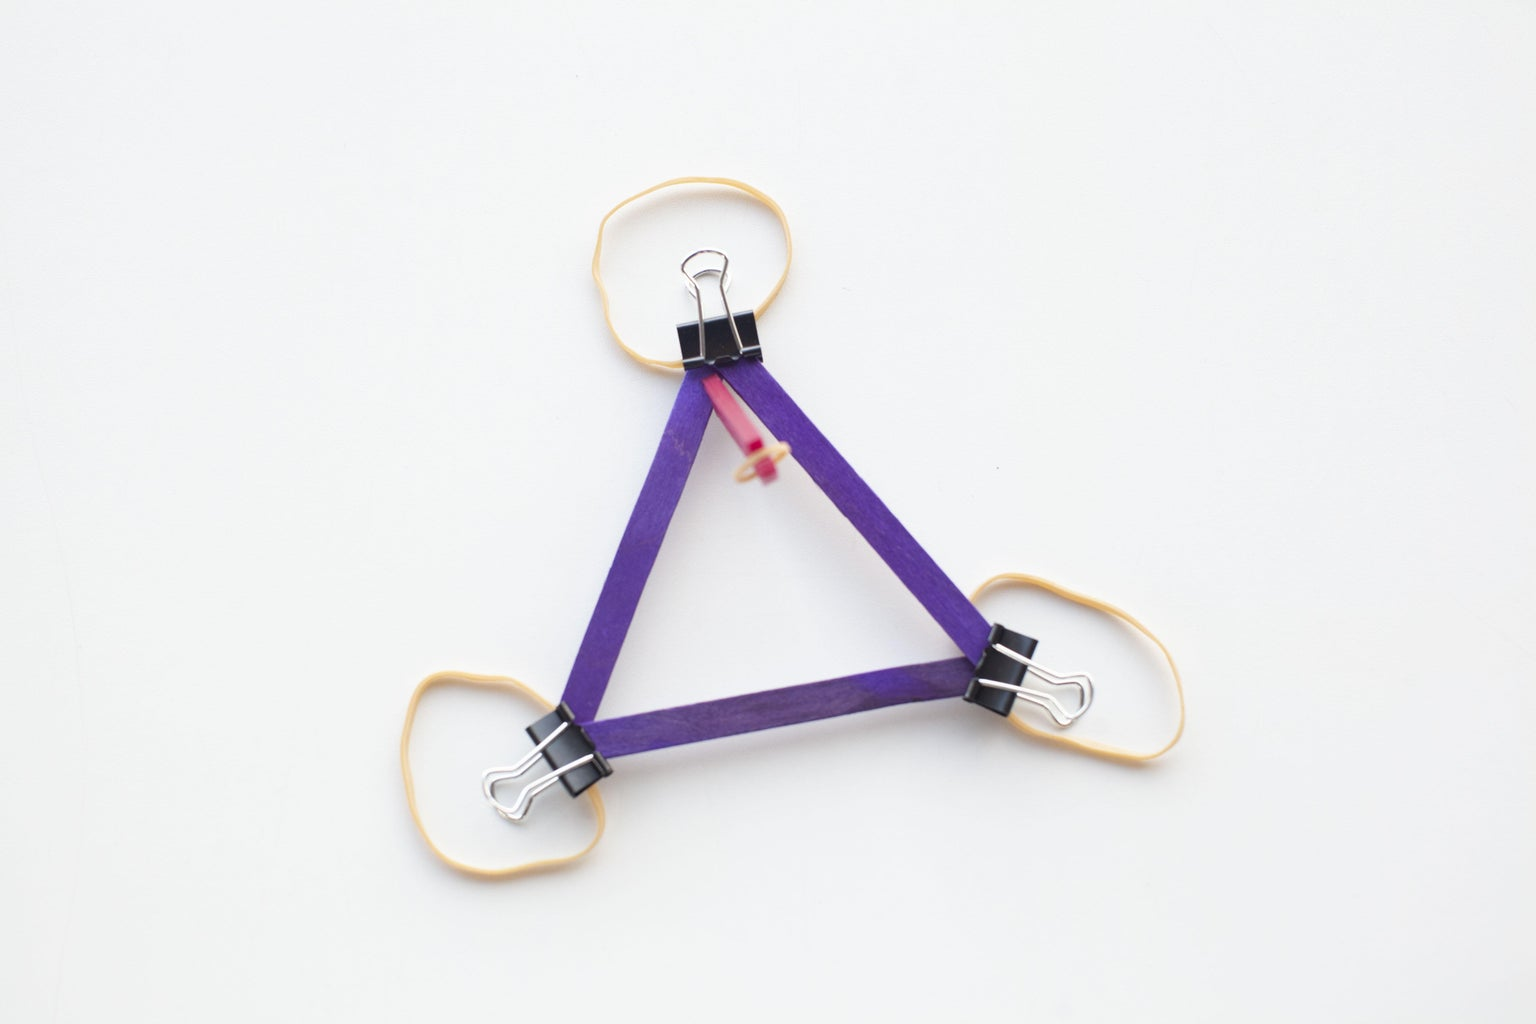 Add Rubber Bands and Assemble!